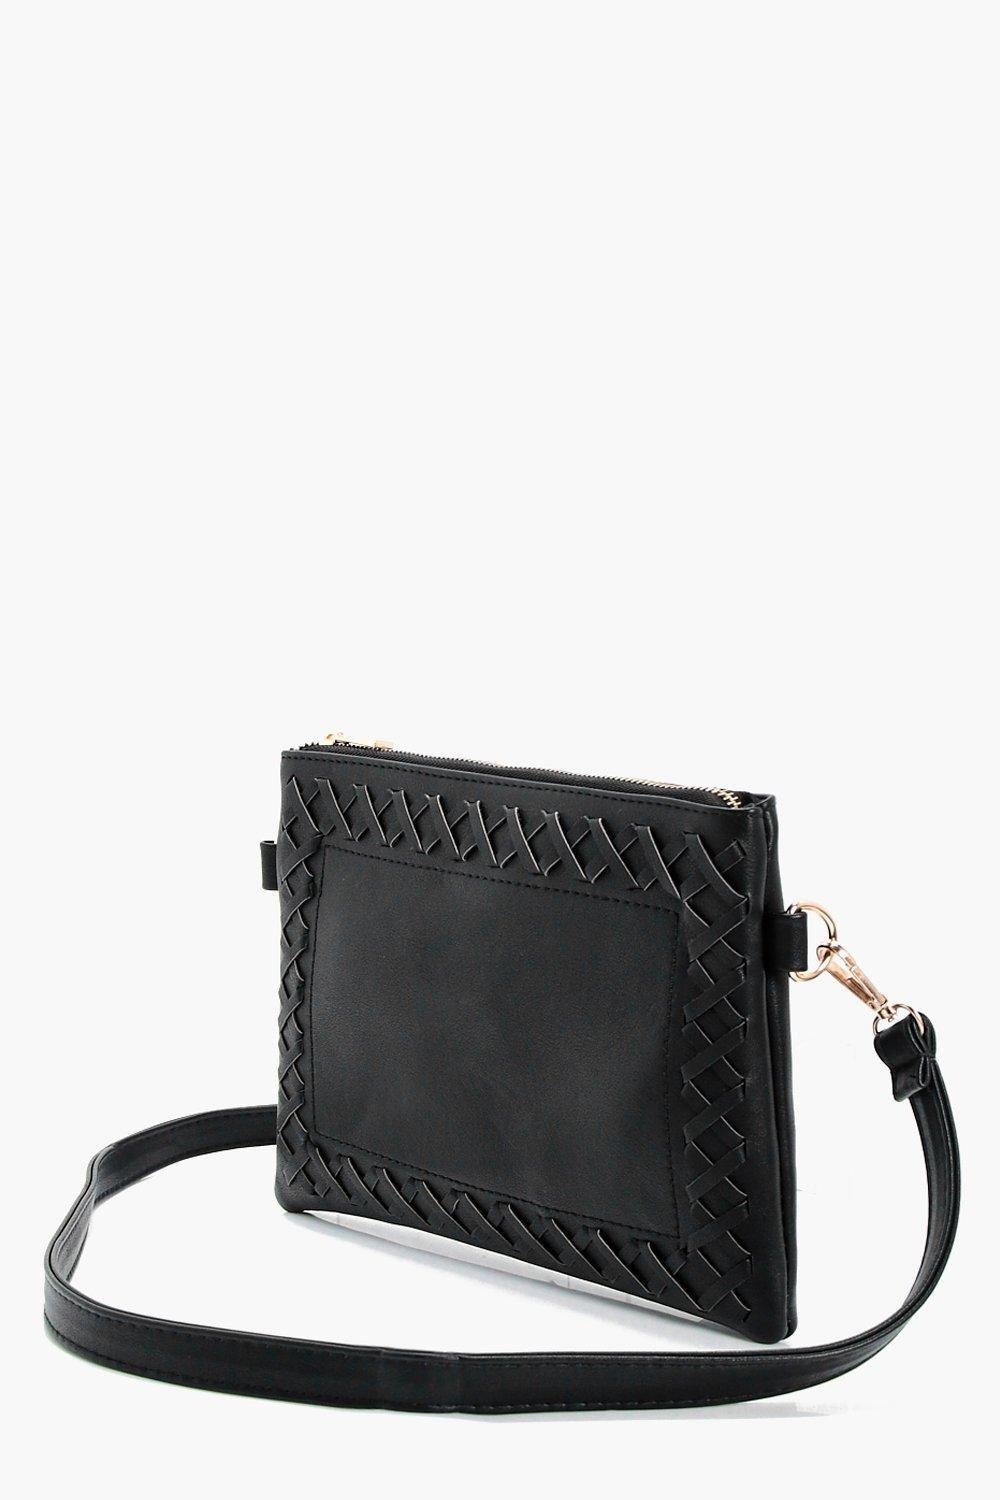 Lyst - Boohoo Laura Whipstitch   Tassel Cross Body Bag in Black 8b871f78cbc8d